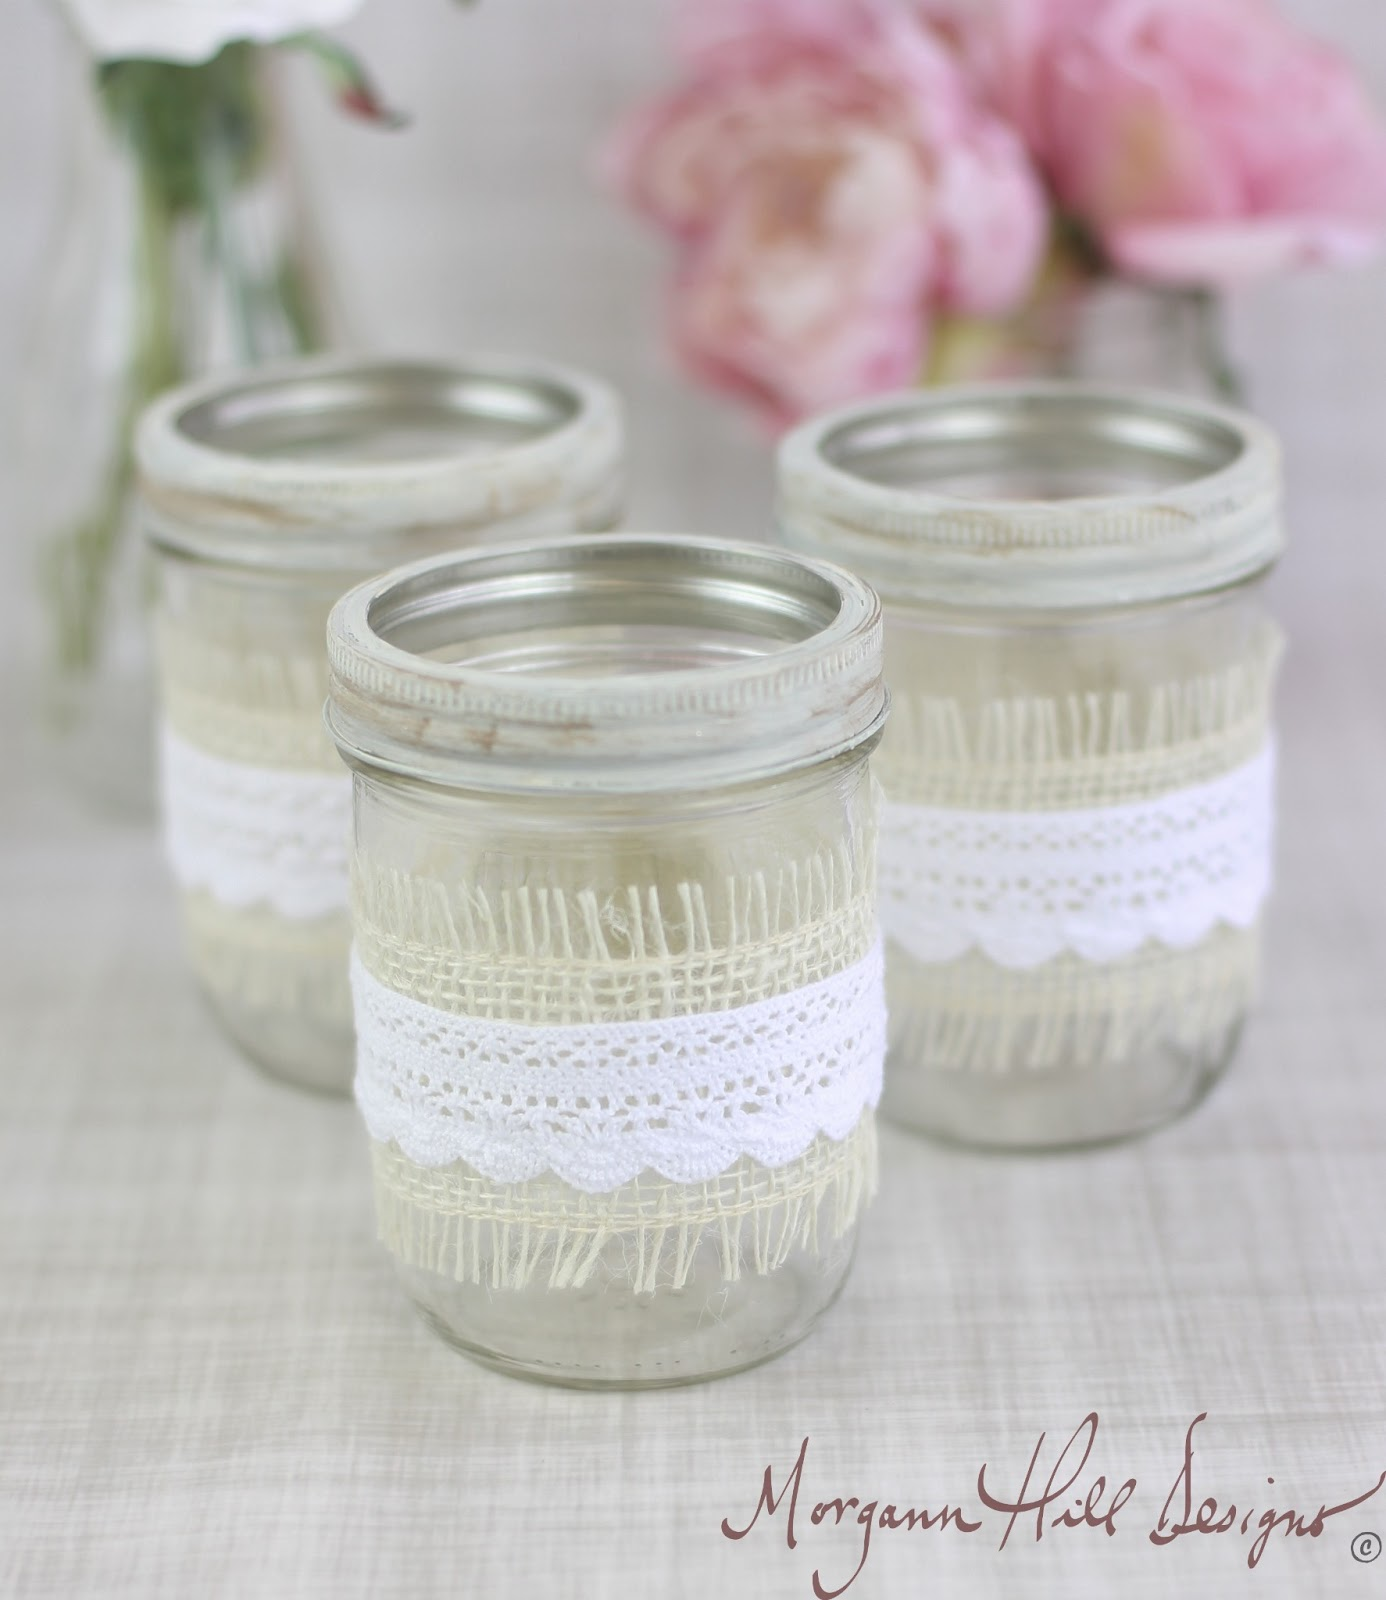 Vintage Wedding Ideas Mason Jars: Morgann Hill Designs: Mason Jar Wedding Centerpieces Vases